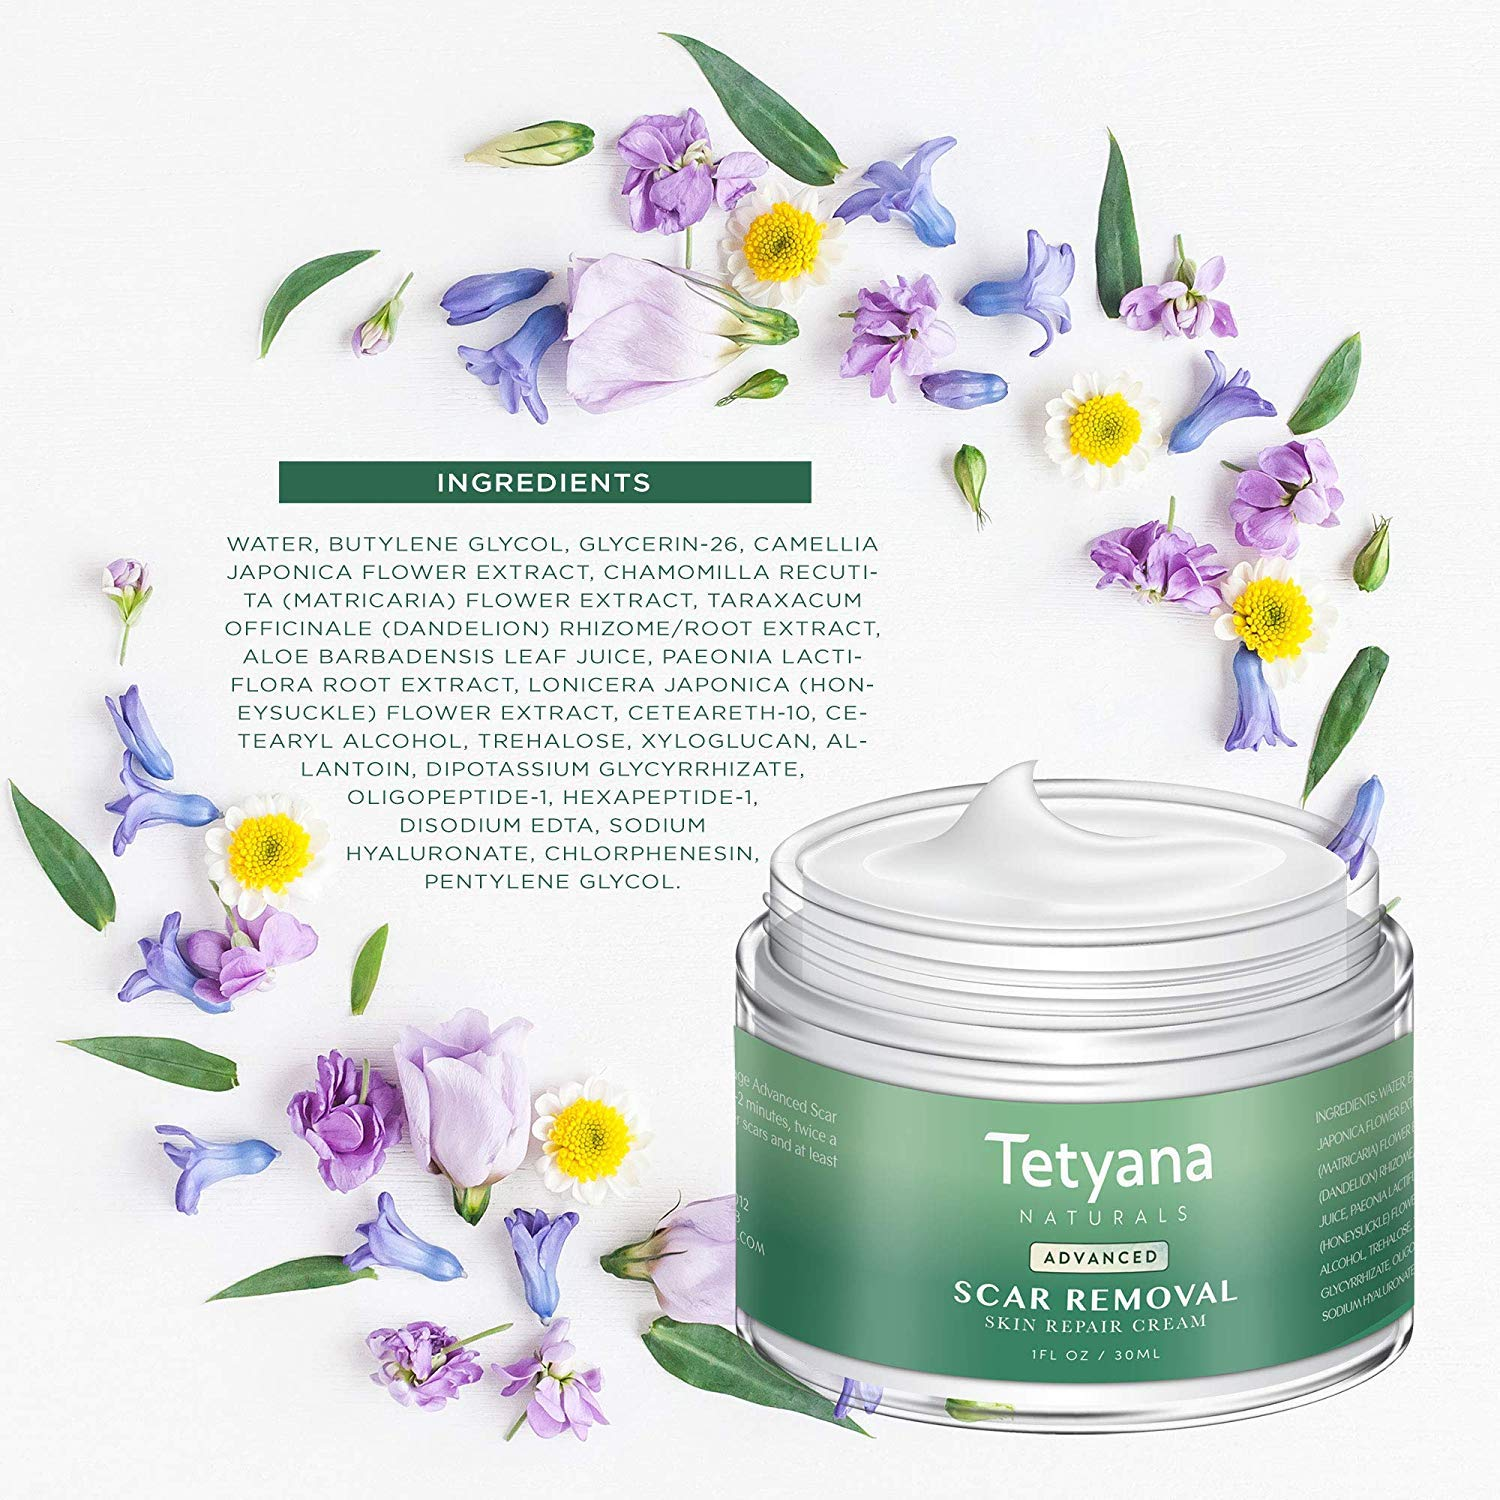 Tetyana naturals Scar Removal with Cream Natural Herbal Extracts Formula for Face & Body Old & New Scars from Cuts Stretch Marks, C-Sections & Surgeries (30ml 1pack) by Neutrogena (Image #6)